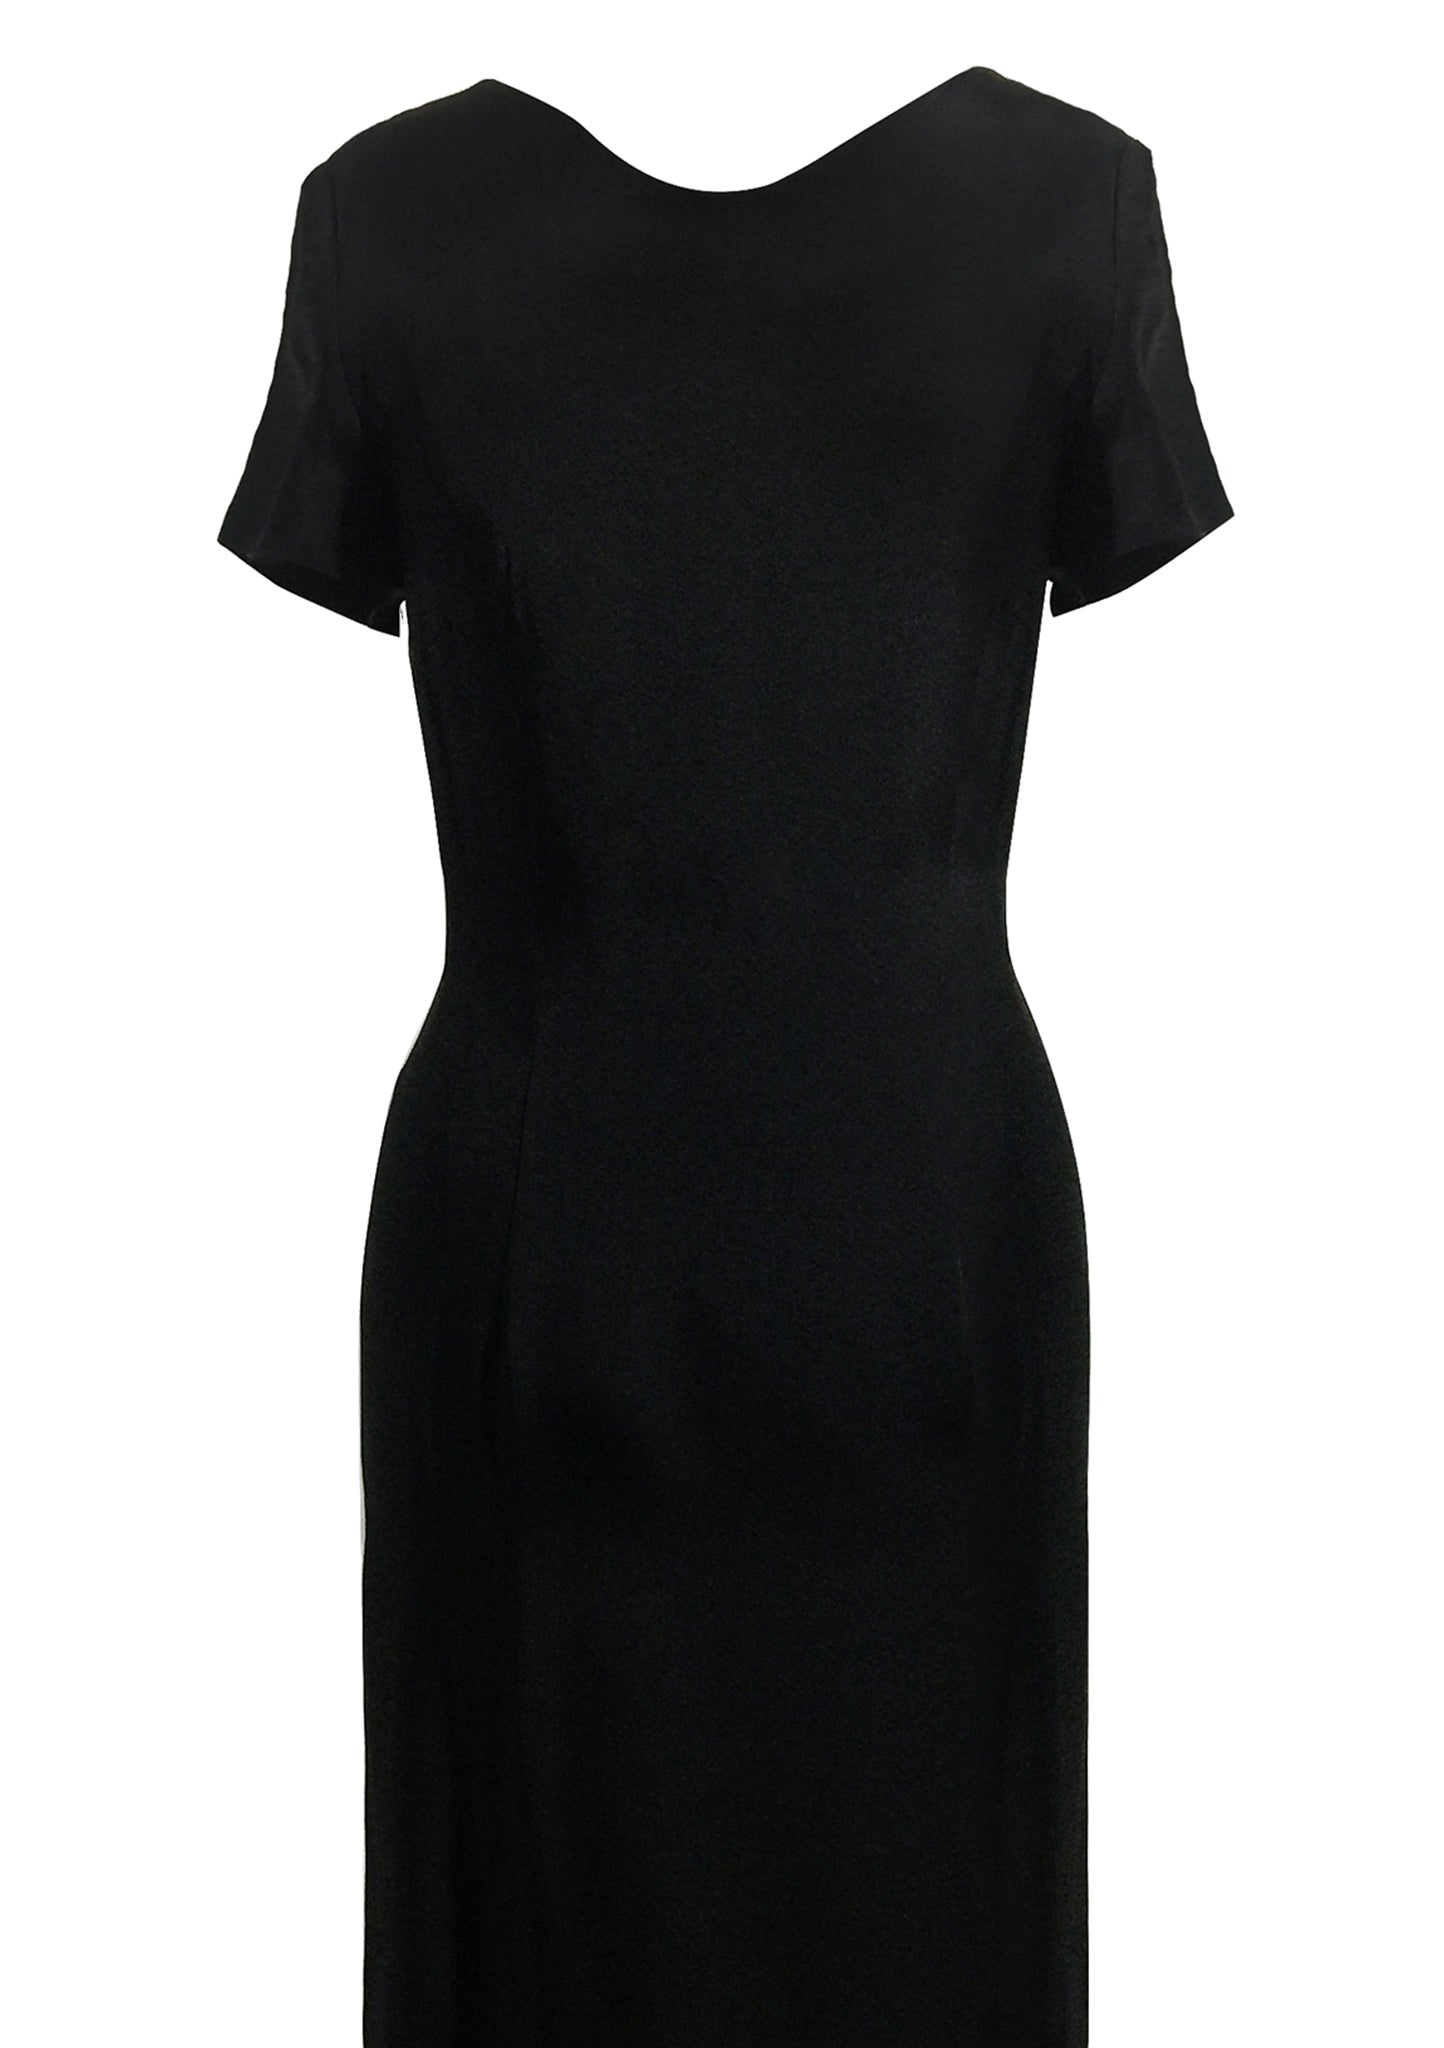 Zoe Short Sleeved Dress - HEMYCA London